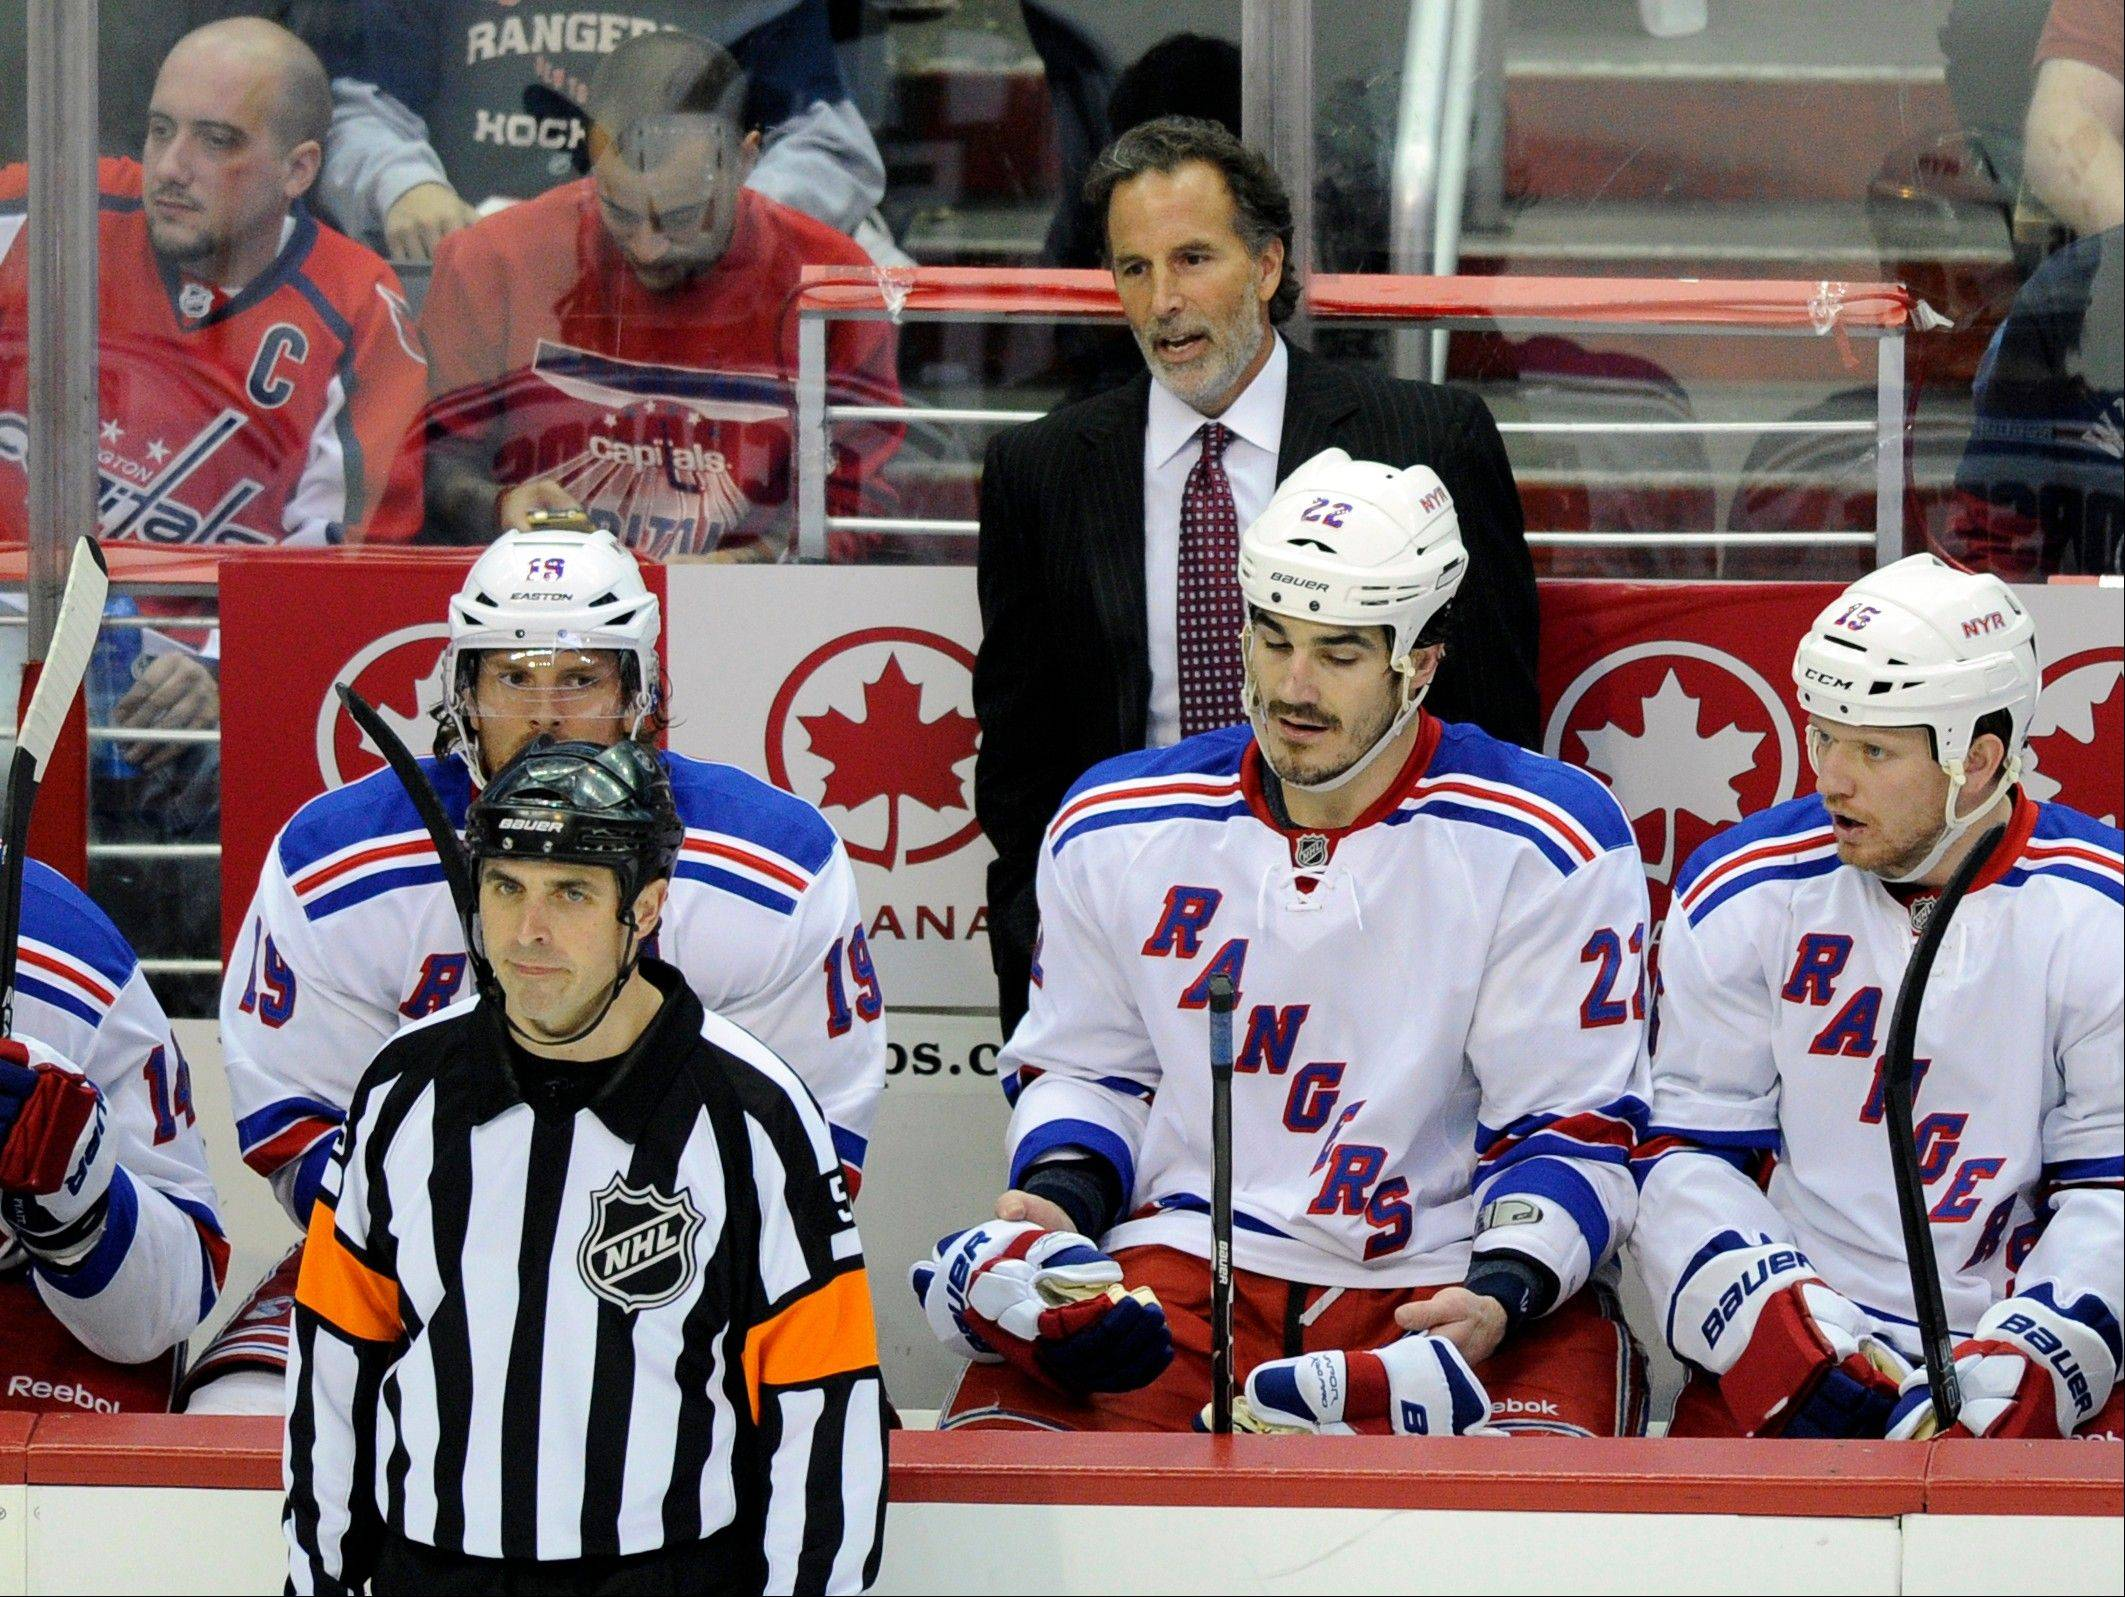 FILE - In this May 13, 2013, file photo, New York Rangers head coach John Tortorella, top rear, looks on from behind the bench during the second period of Game 7 first-round NHL Stanley Cup playoff hockey series against the Washington Capitals in Washington. The Vancouver Canucks hired Tortorella to be their new coach on Tuesday, June 25, 2013. Tortorella was recently fired by the Rangers after they lost to the Boston Bruins in the playoffs in five games. (AP Photo/Nick Wass, File)